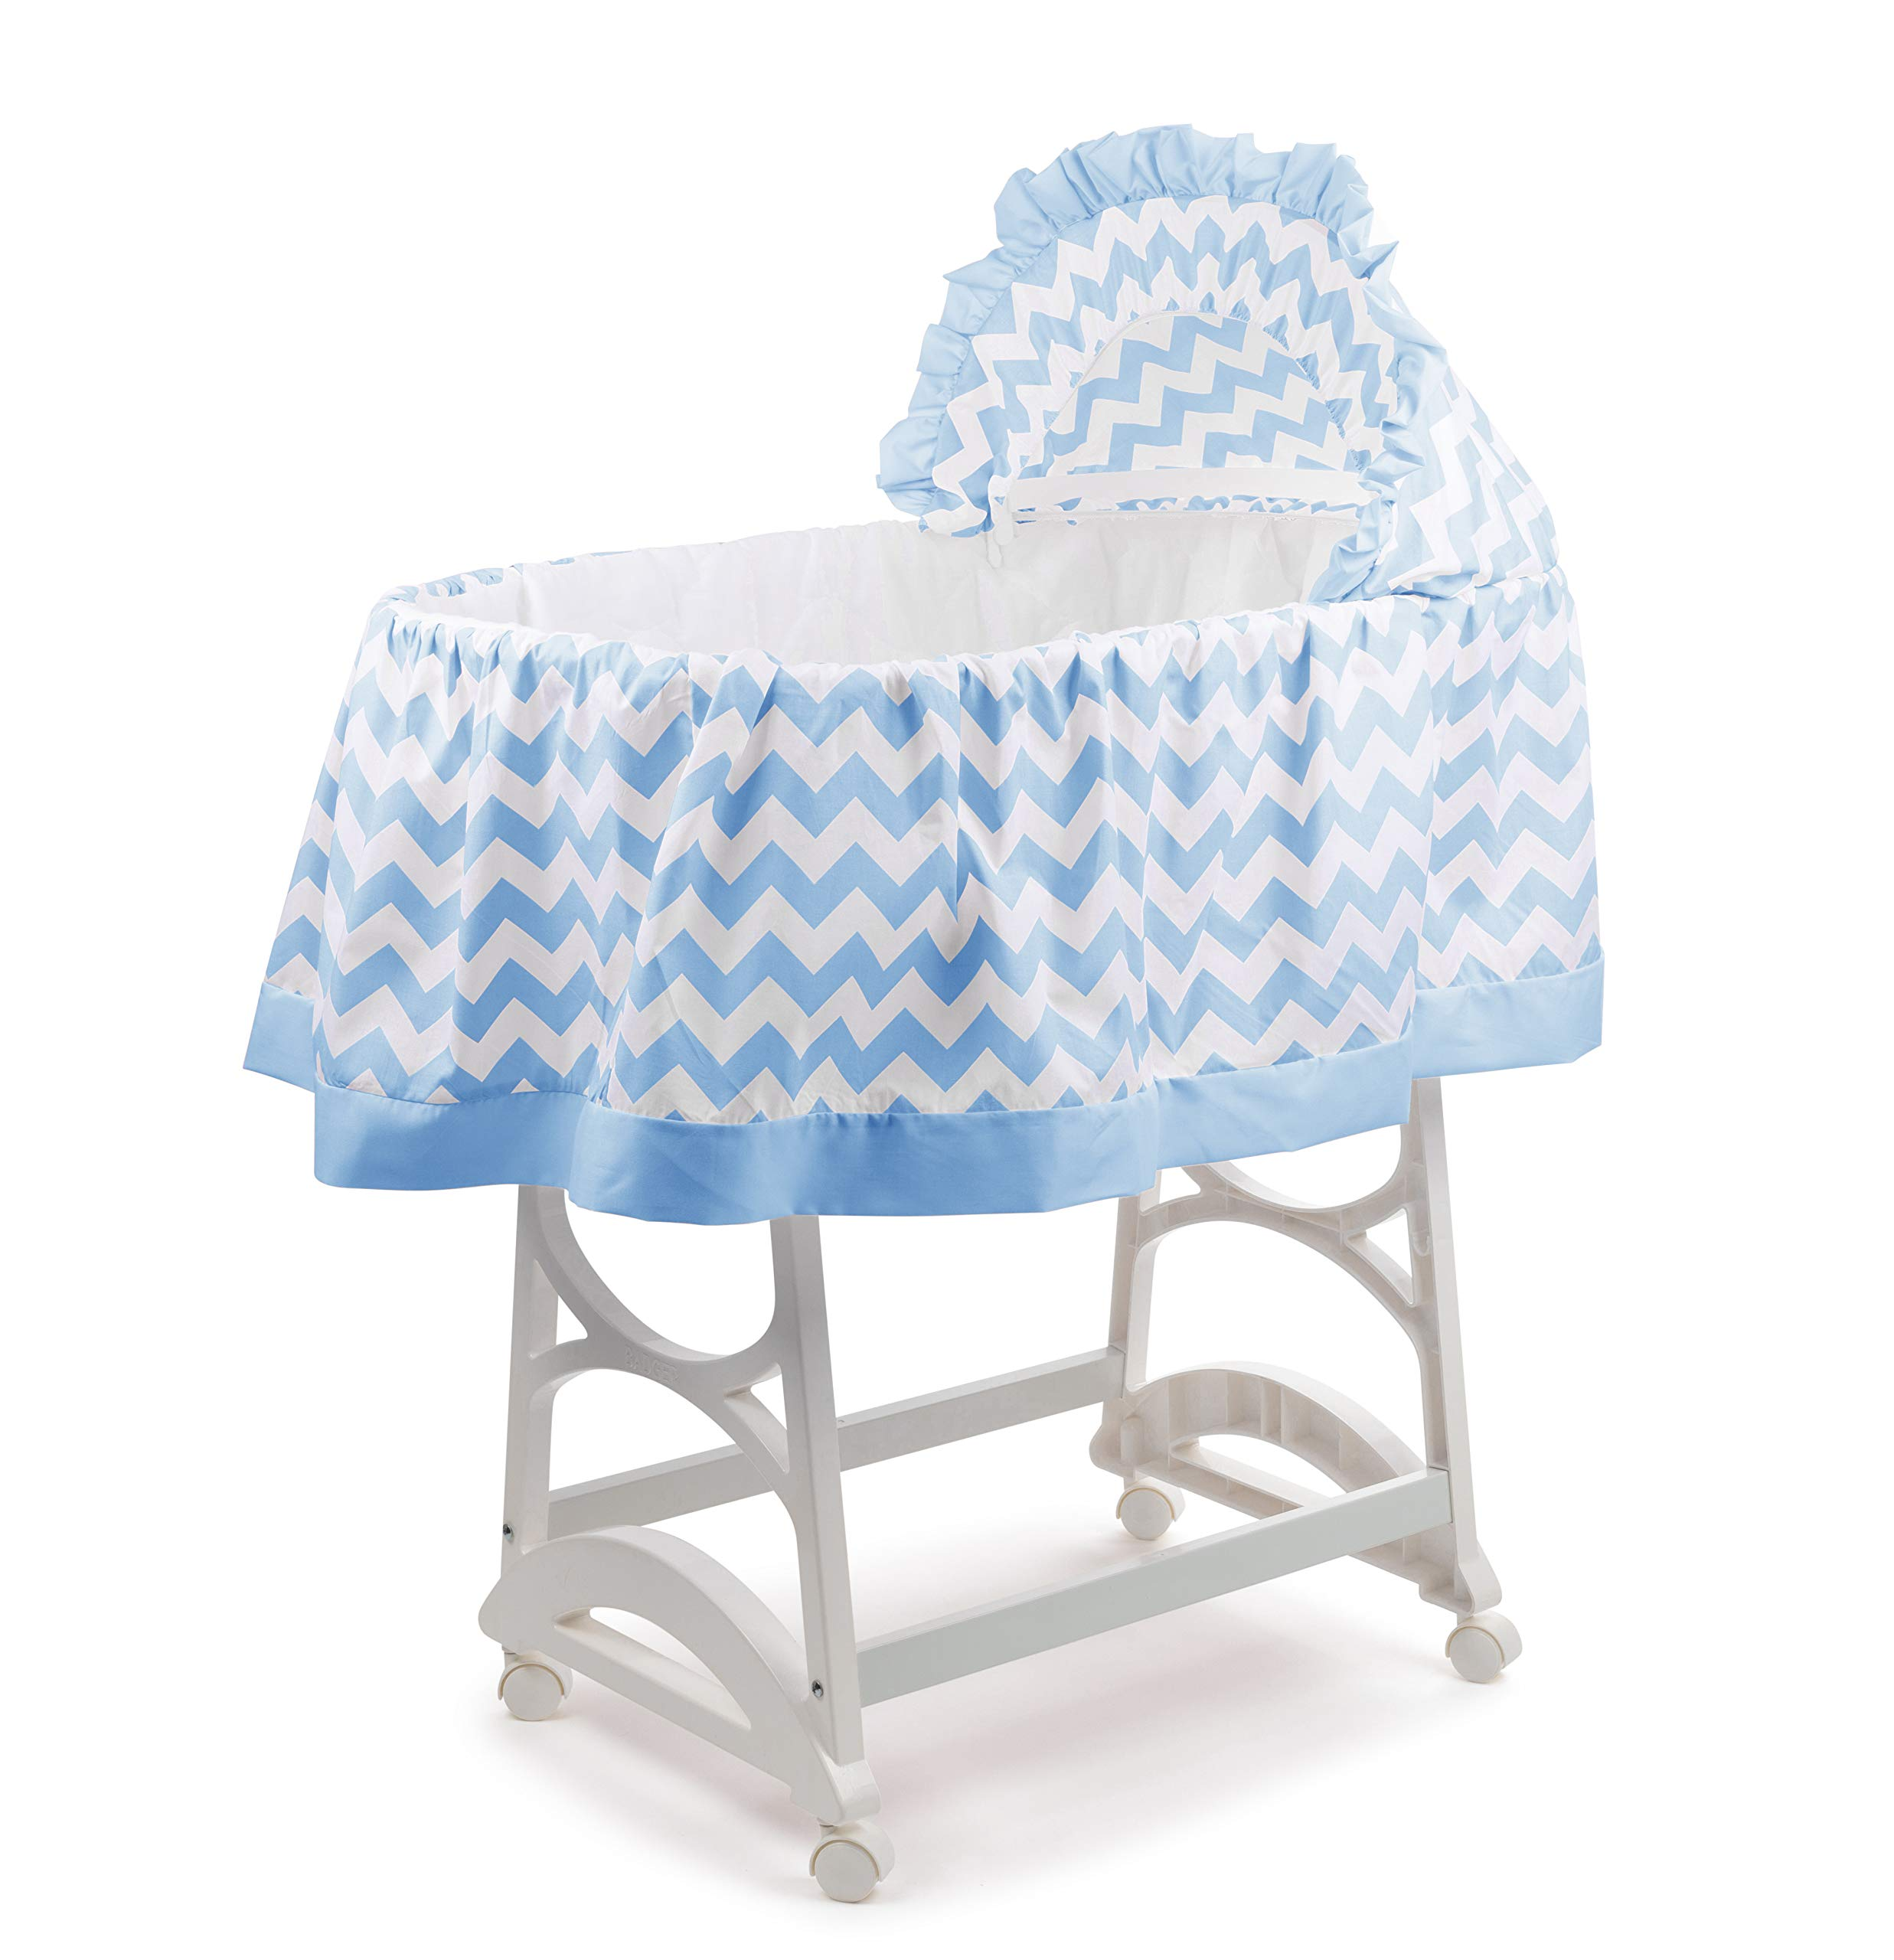 aBaby Chevron Short Bassinet Skirt, Blue, Small by Ababy